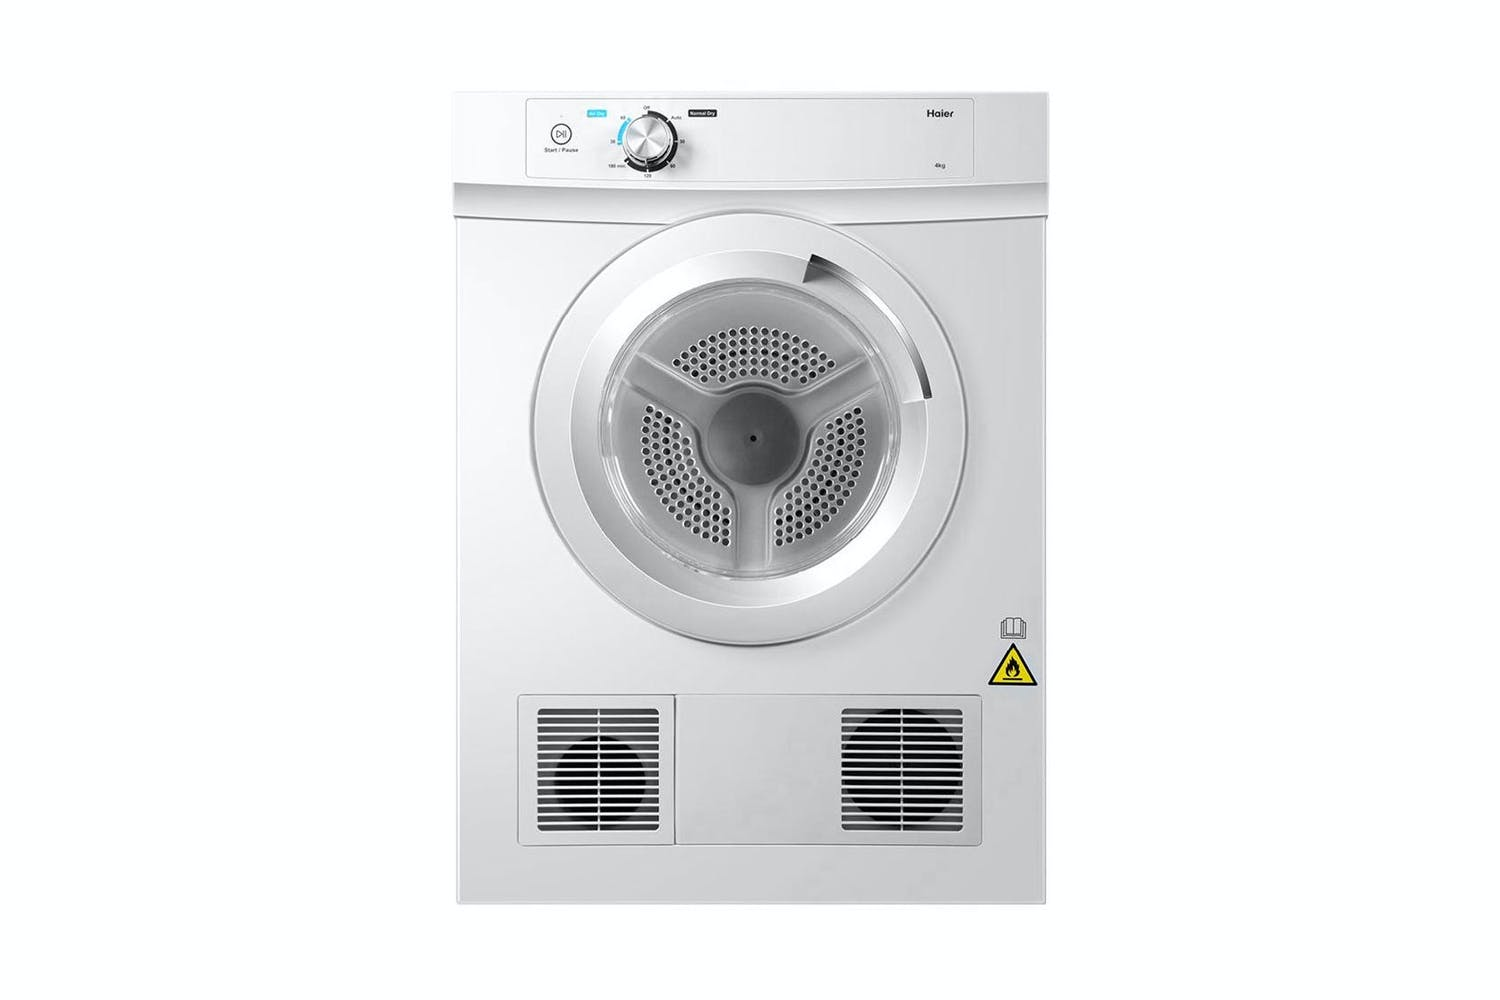 Dryer Clothes For Your Laundry Bosch Harvey Norman Plug Wiring Along With Page 4 Of Indesit Haier 4kg Sensor